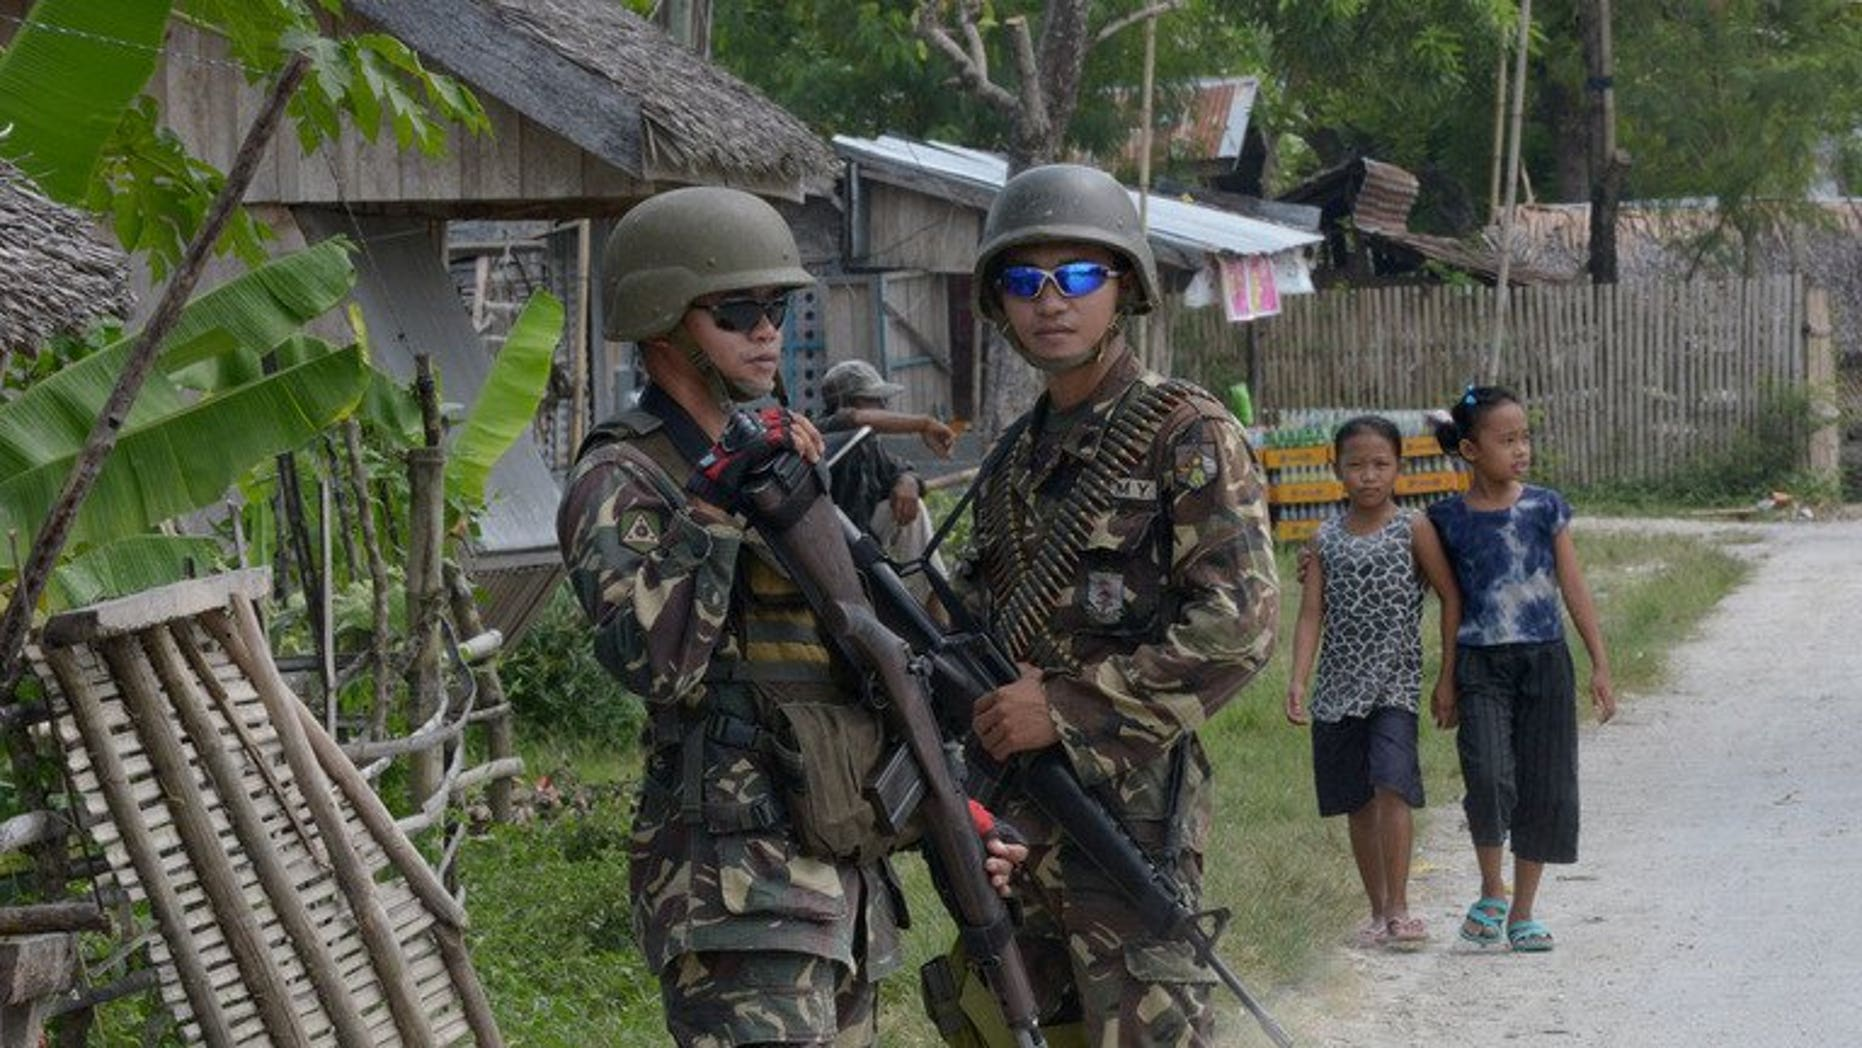 Soldiers guard a road in the Philippine town of Datu Salibo, on October 11, 2012. Communist insurgents have promised revenge after Philippine soldiers killed their regional spokesmen along with seven other rebels in the latest operation against the militants since talks to end one of Asia's longest running insurgencies collapsed.